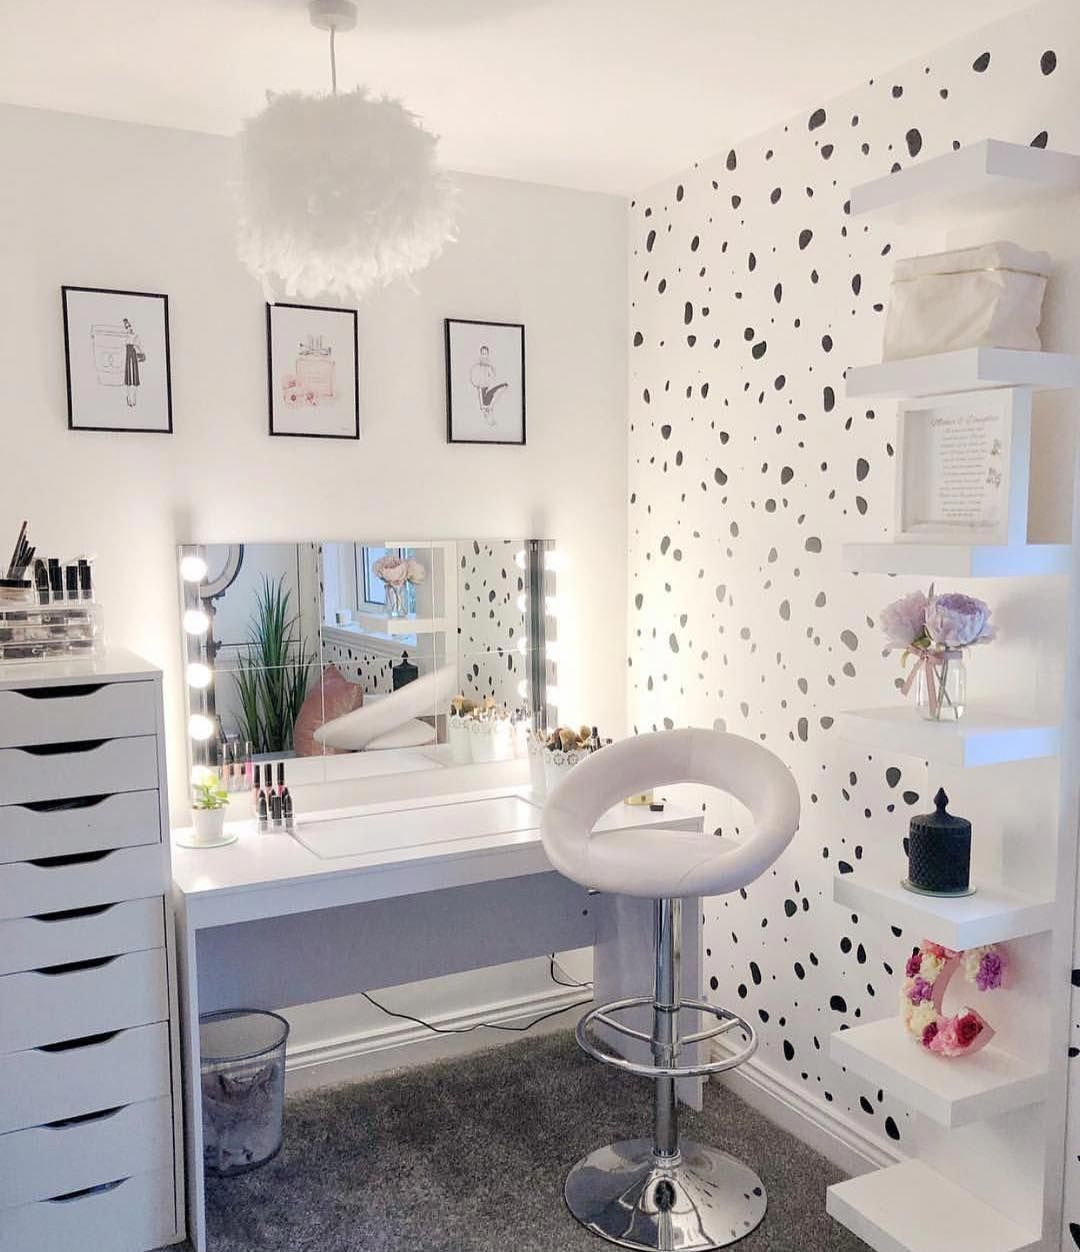 """Olivia Jent on Instagram: """"Speckled wallpaper 🤩 YAY or NAY"""